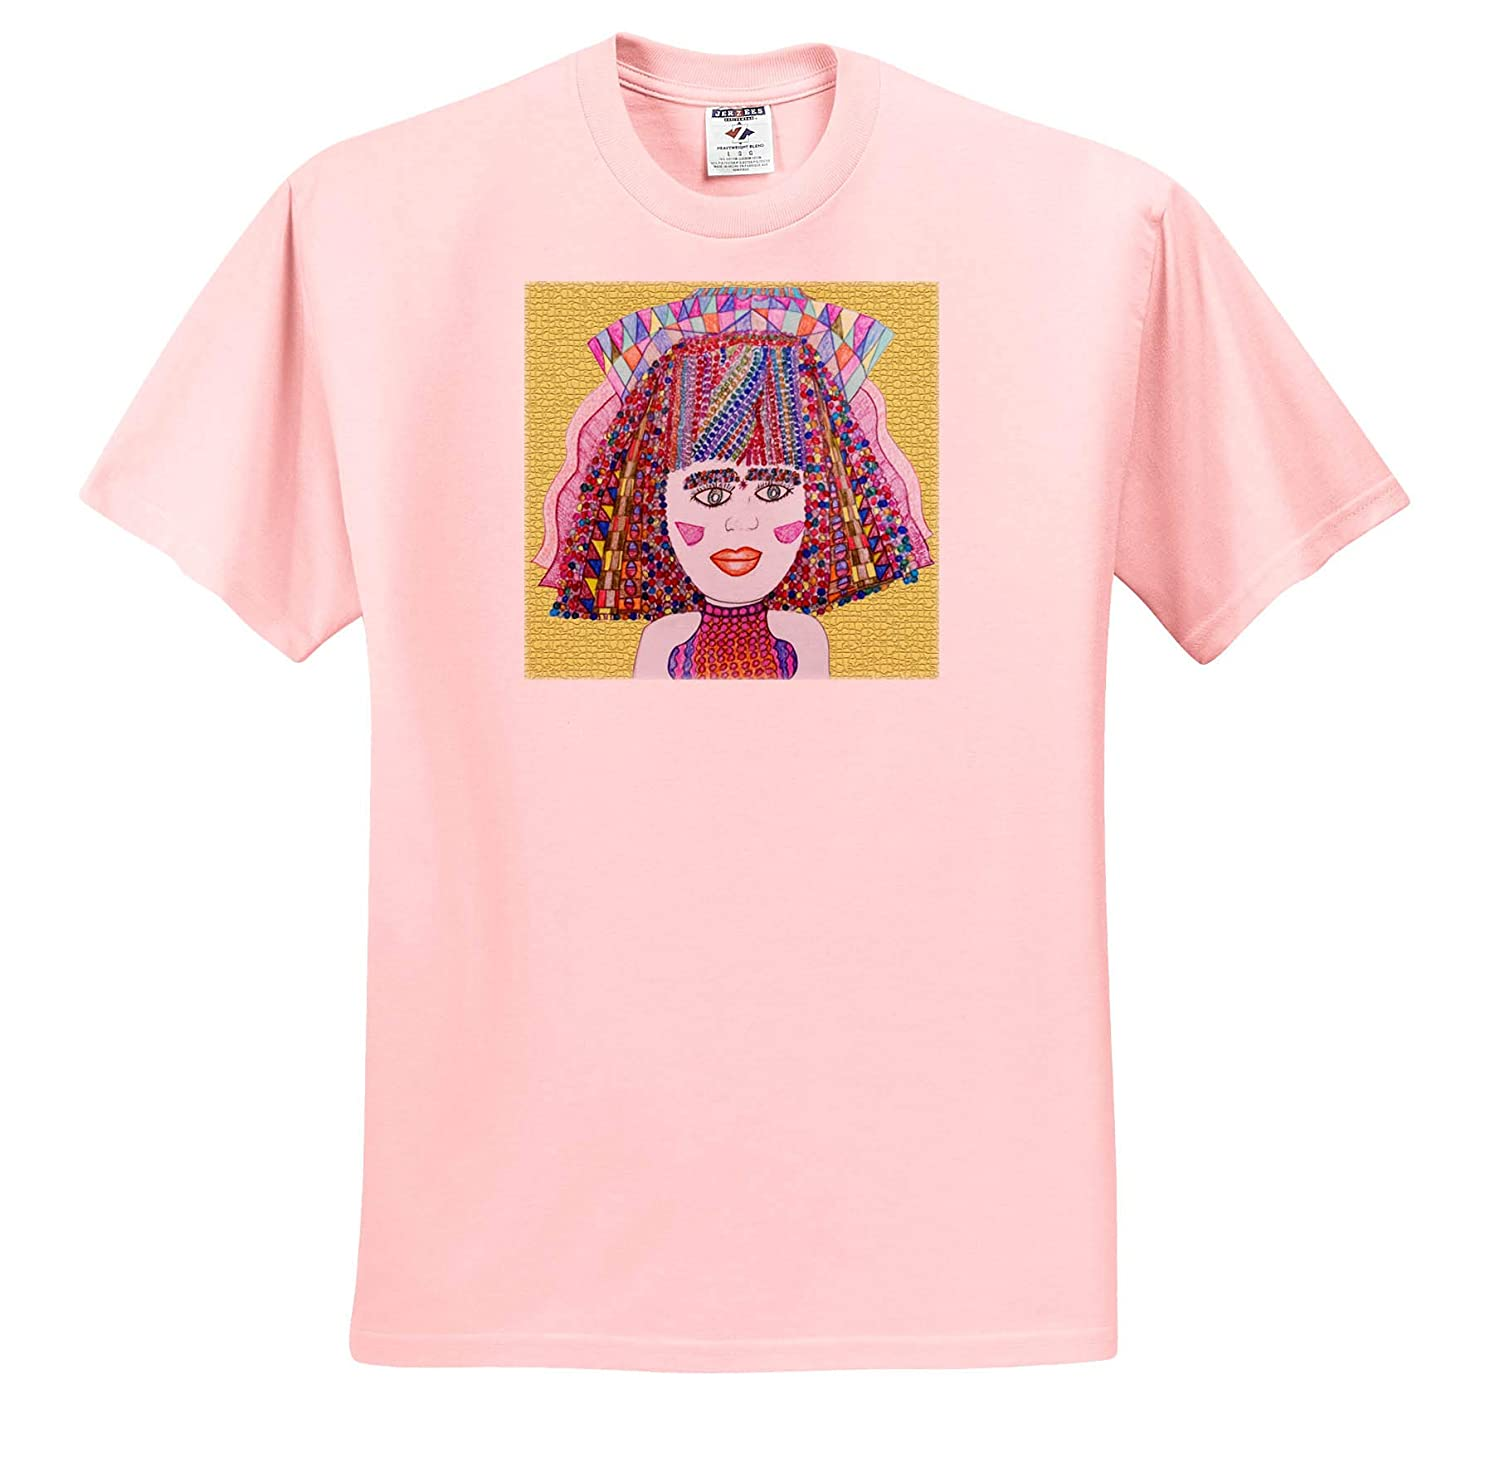 Jos Faux Doll Beaded T-Shirts A Cute Beaded Hairdo on a Girl with a Ribbon Headdress on Gold 3dRose Jos Fauxtographee